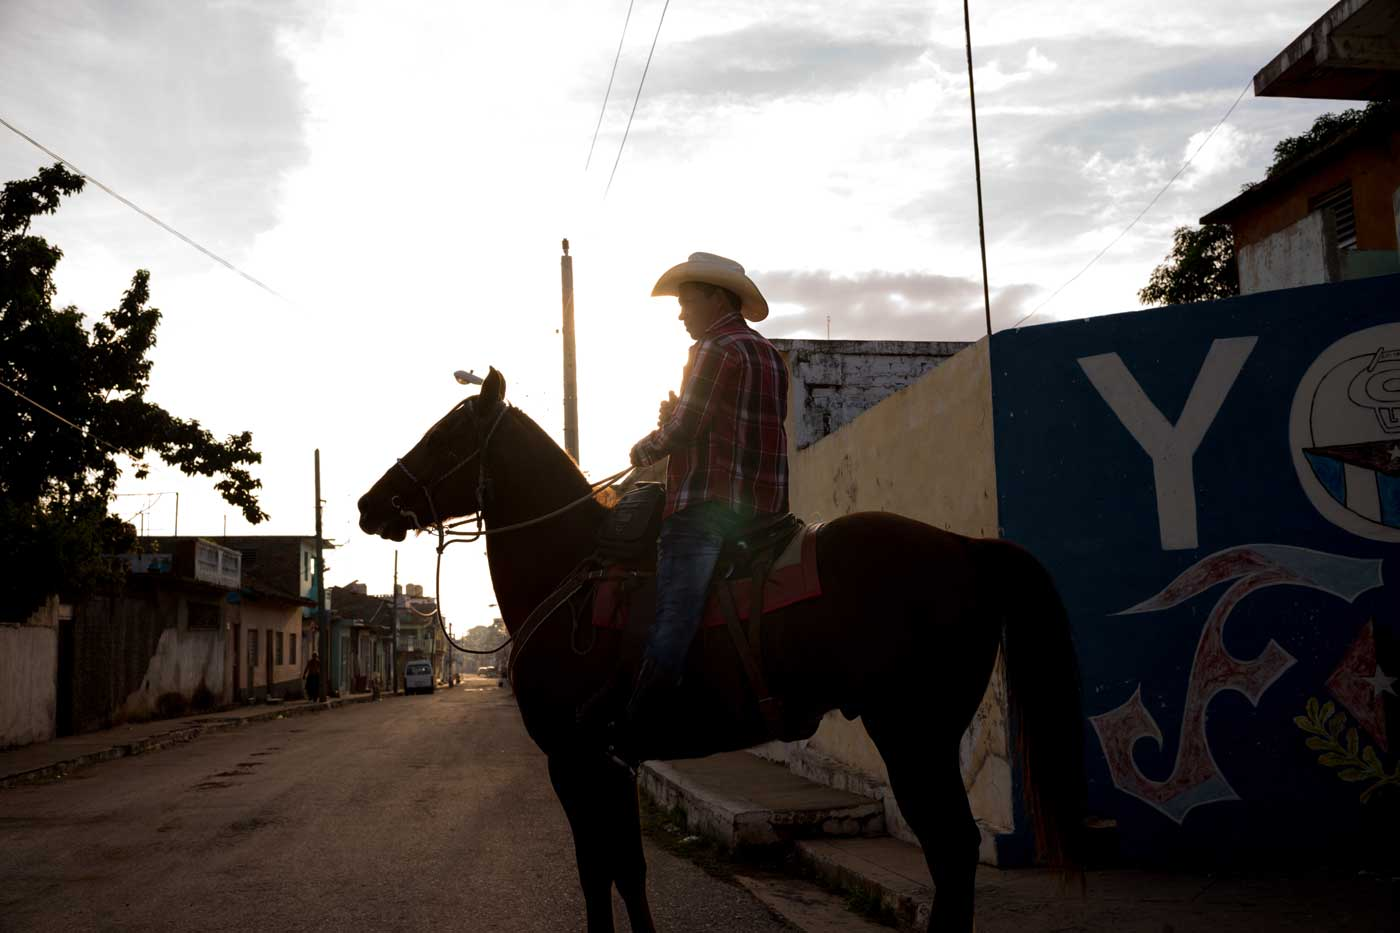 travel-cuba-cienfuegos-leica-m10-rangefinder-35mm-f2-summicron-iv-pre-a-trip-horse-riding-local-citizen-transport